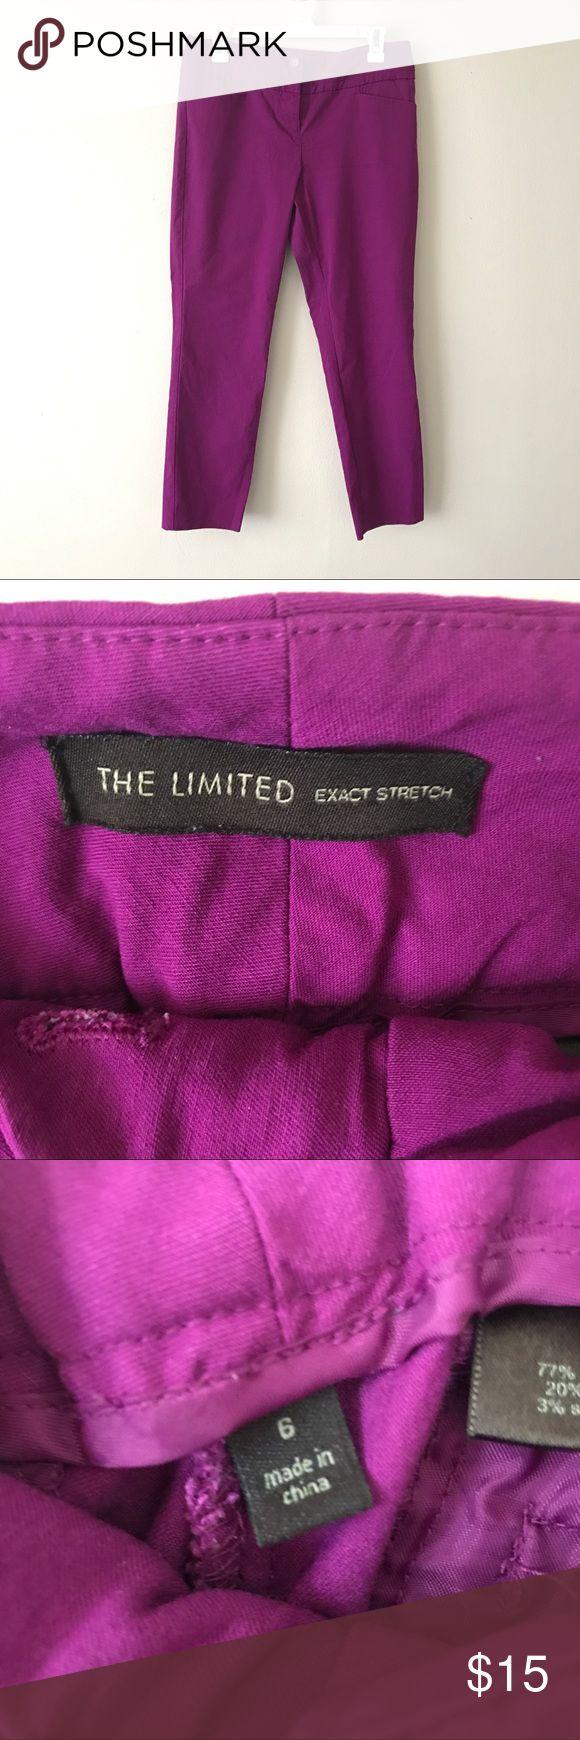 """The Limited purple Capri skinny pants Super comfy fuschia skinny capri pants from The Limited! These pants are in great condition! Pockets in the front and back. Buttons and zippers in front. Waist measures 16"""" across. Pants are 34"""" in length. Inseam is 25"""". *PRICED TO SELL The Limited Pants"""